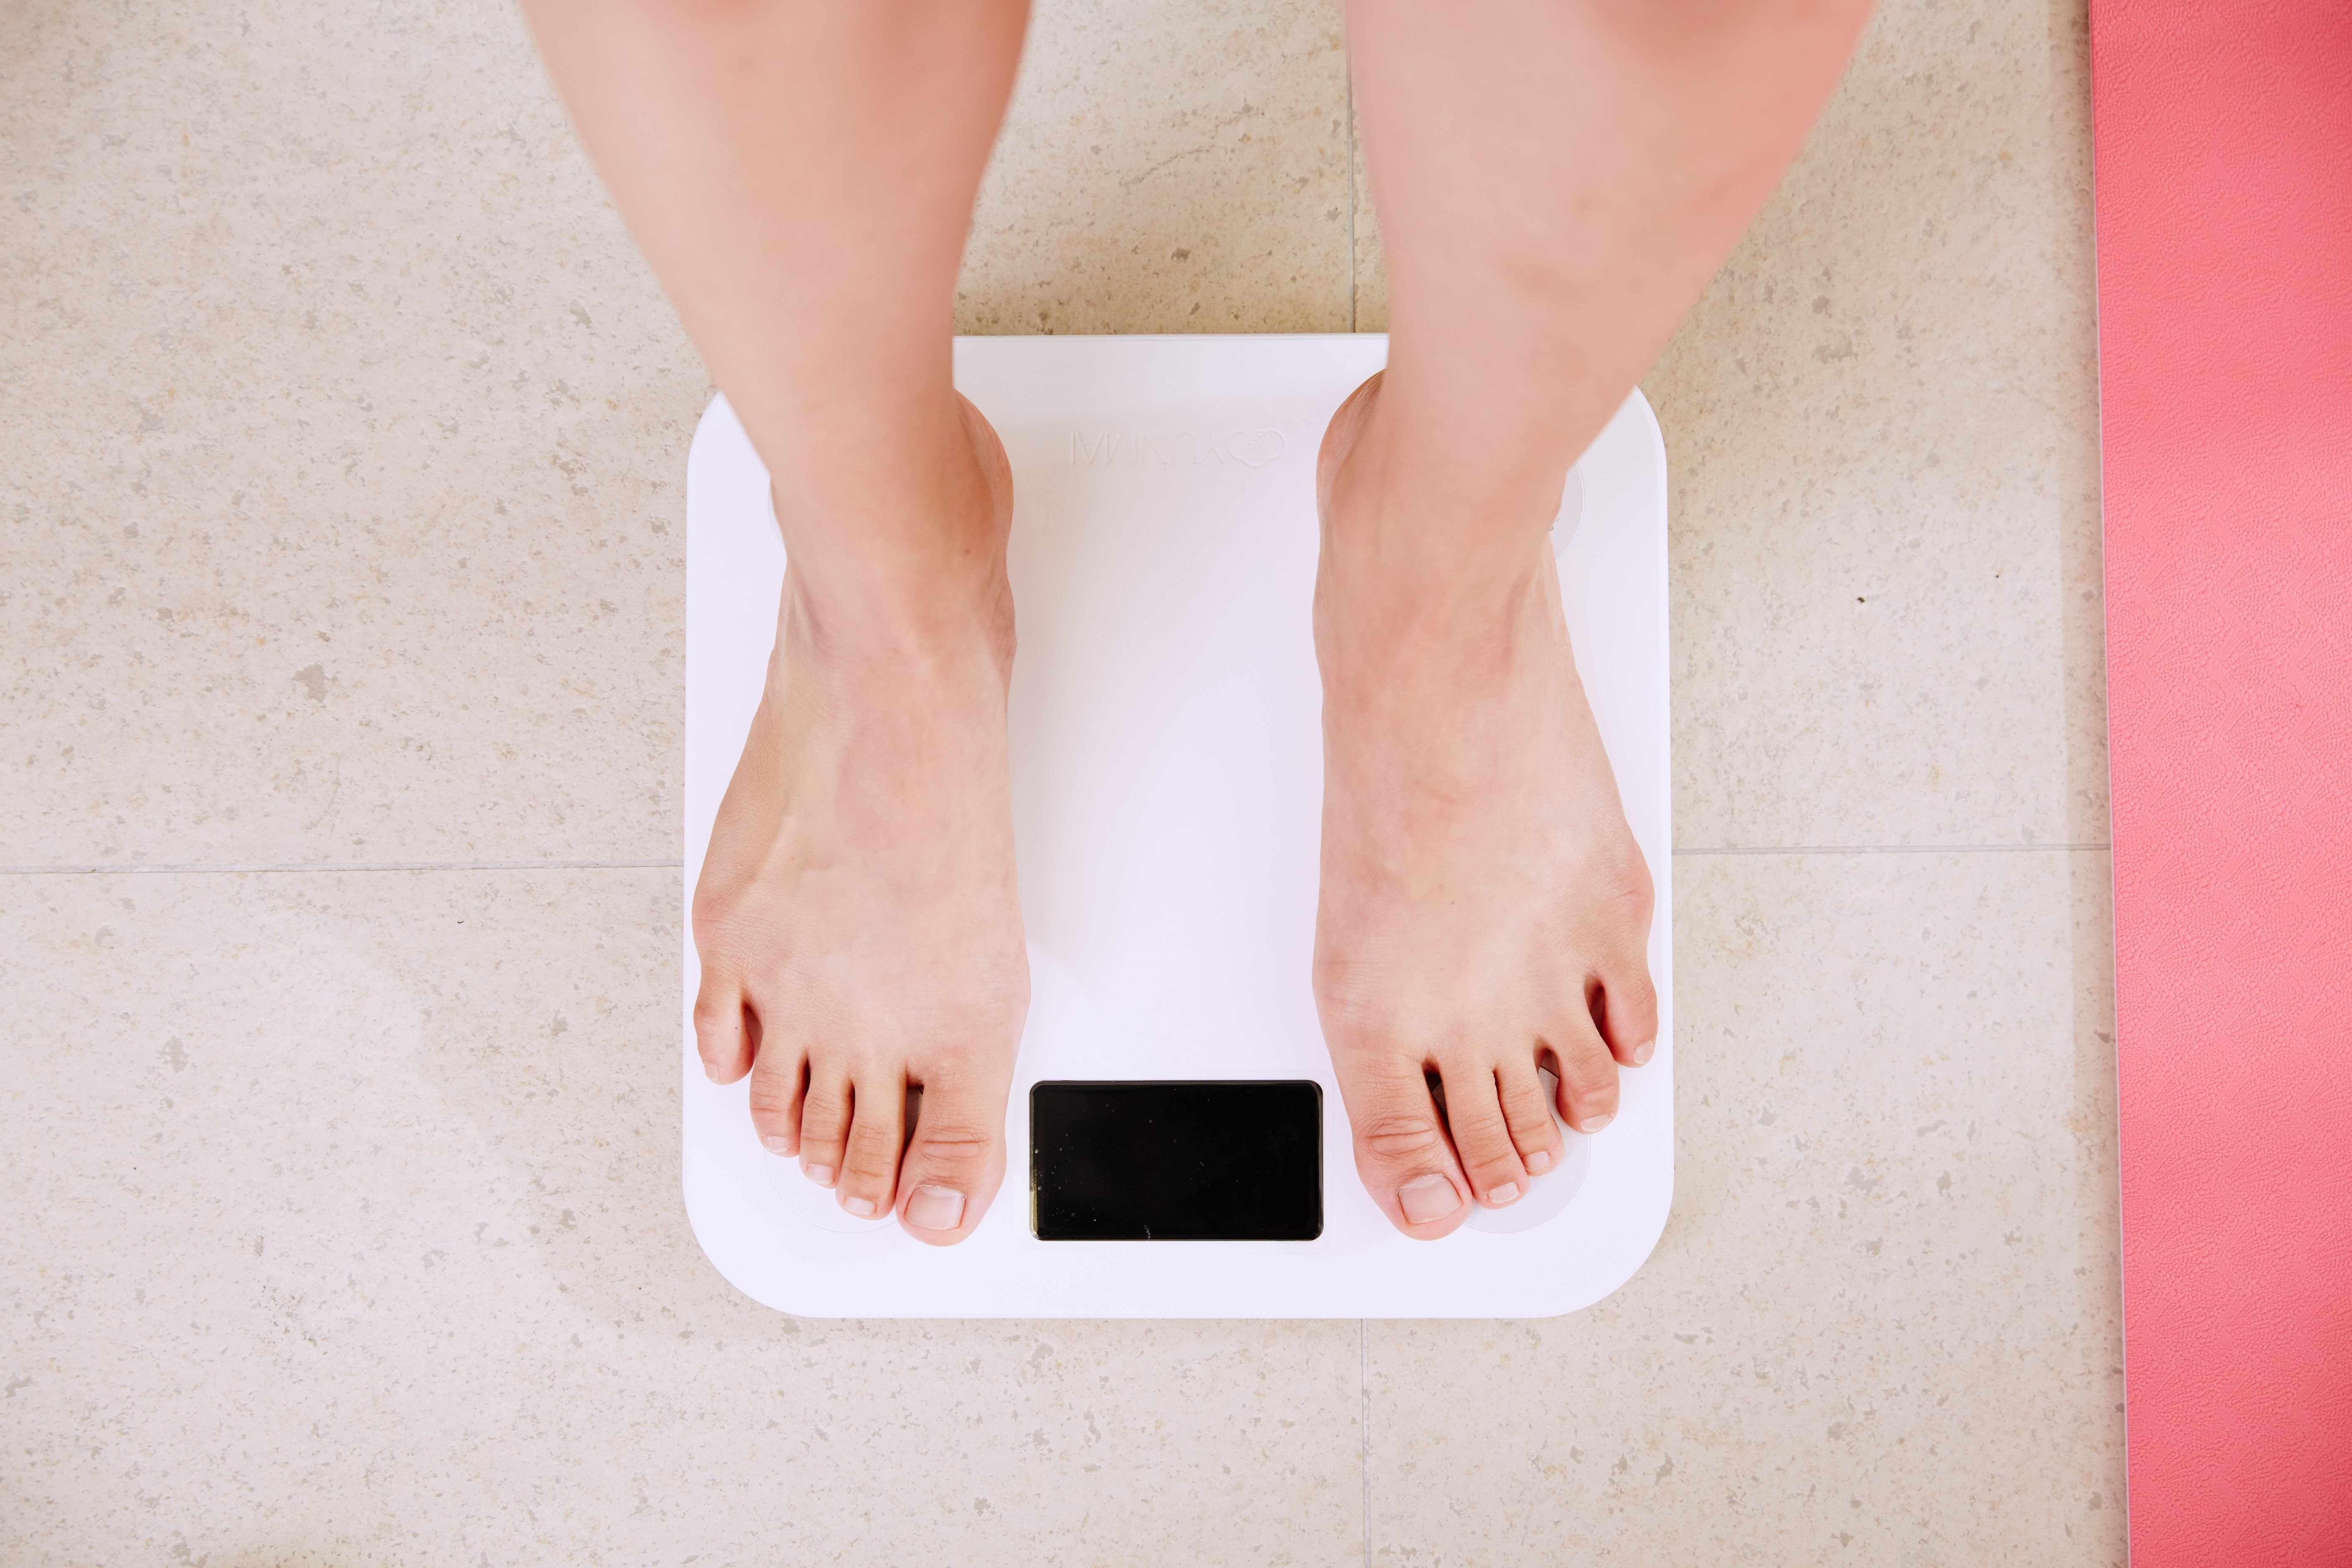 A weighing scale. | Source: Unsplash